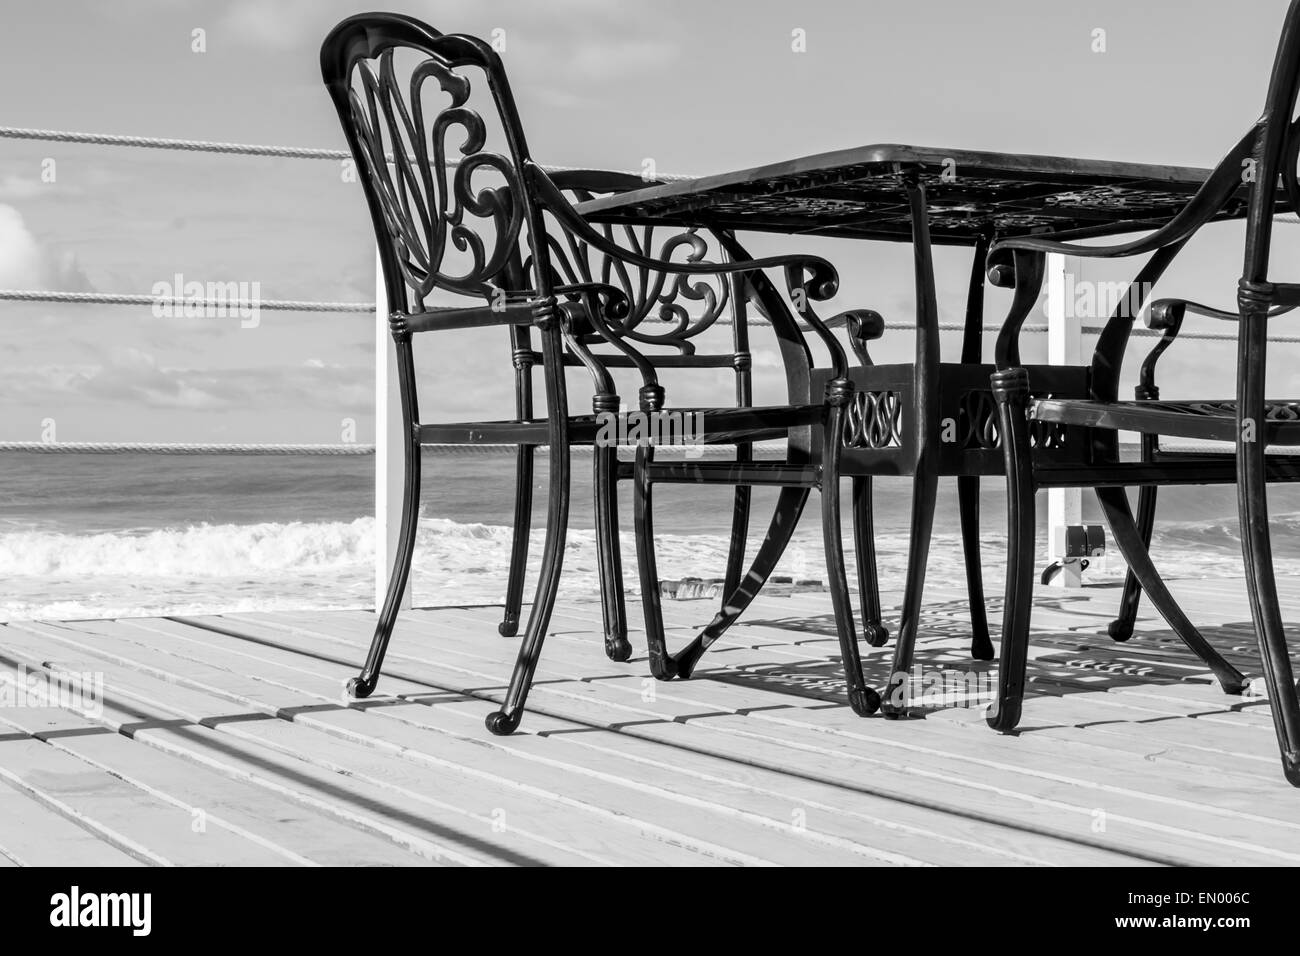 Empty Black Cast Iron Chairs And A Table On Wooden Planking   Stock Image